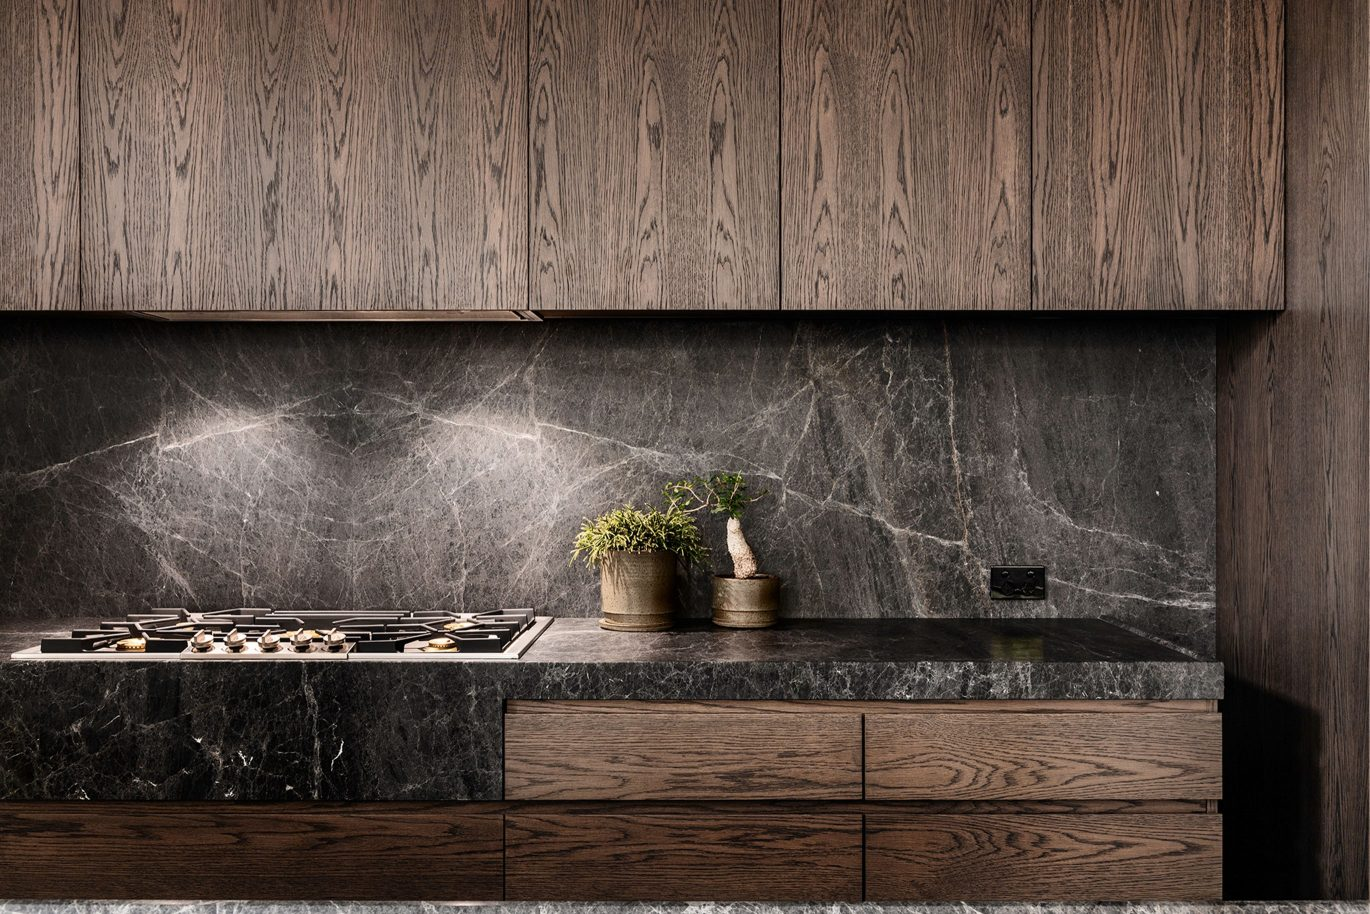 Damastas Marble benchtop and splashback